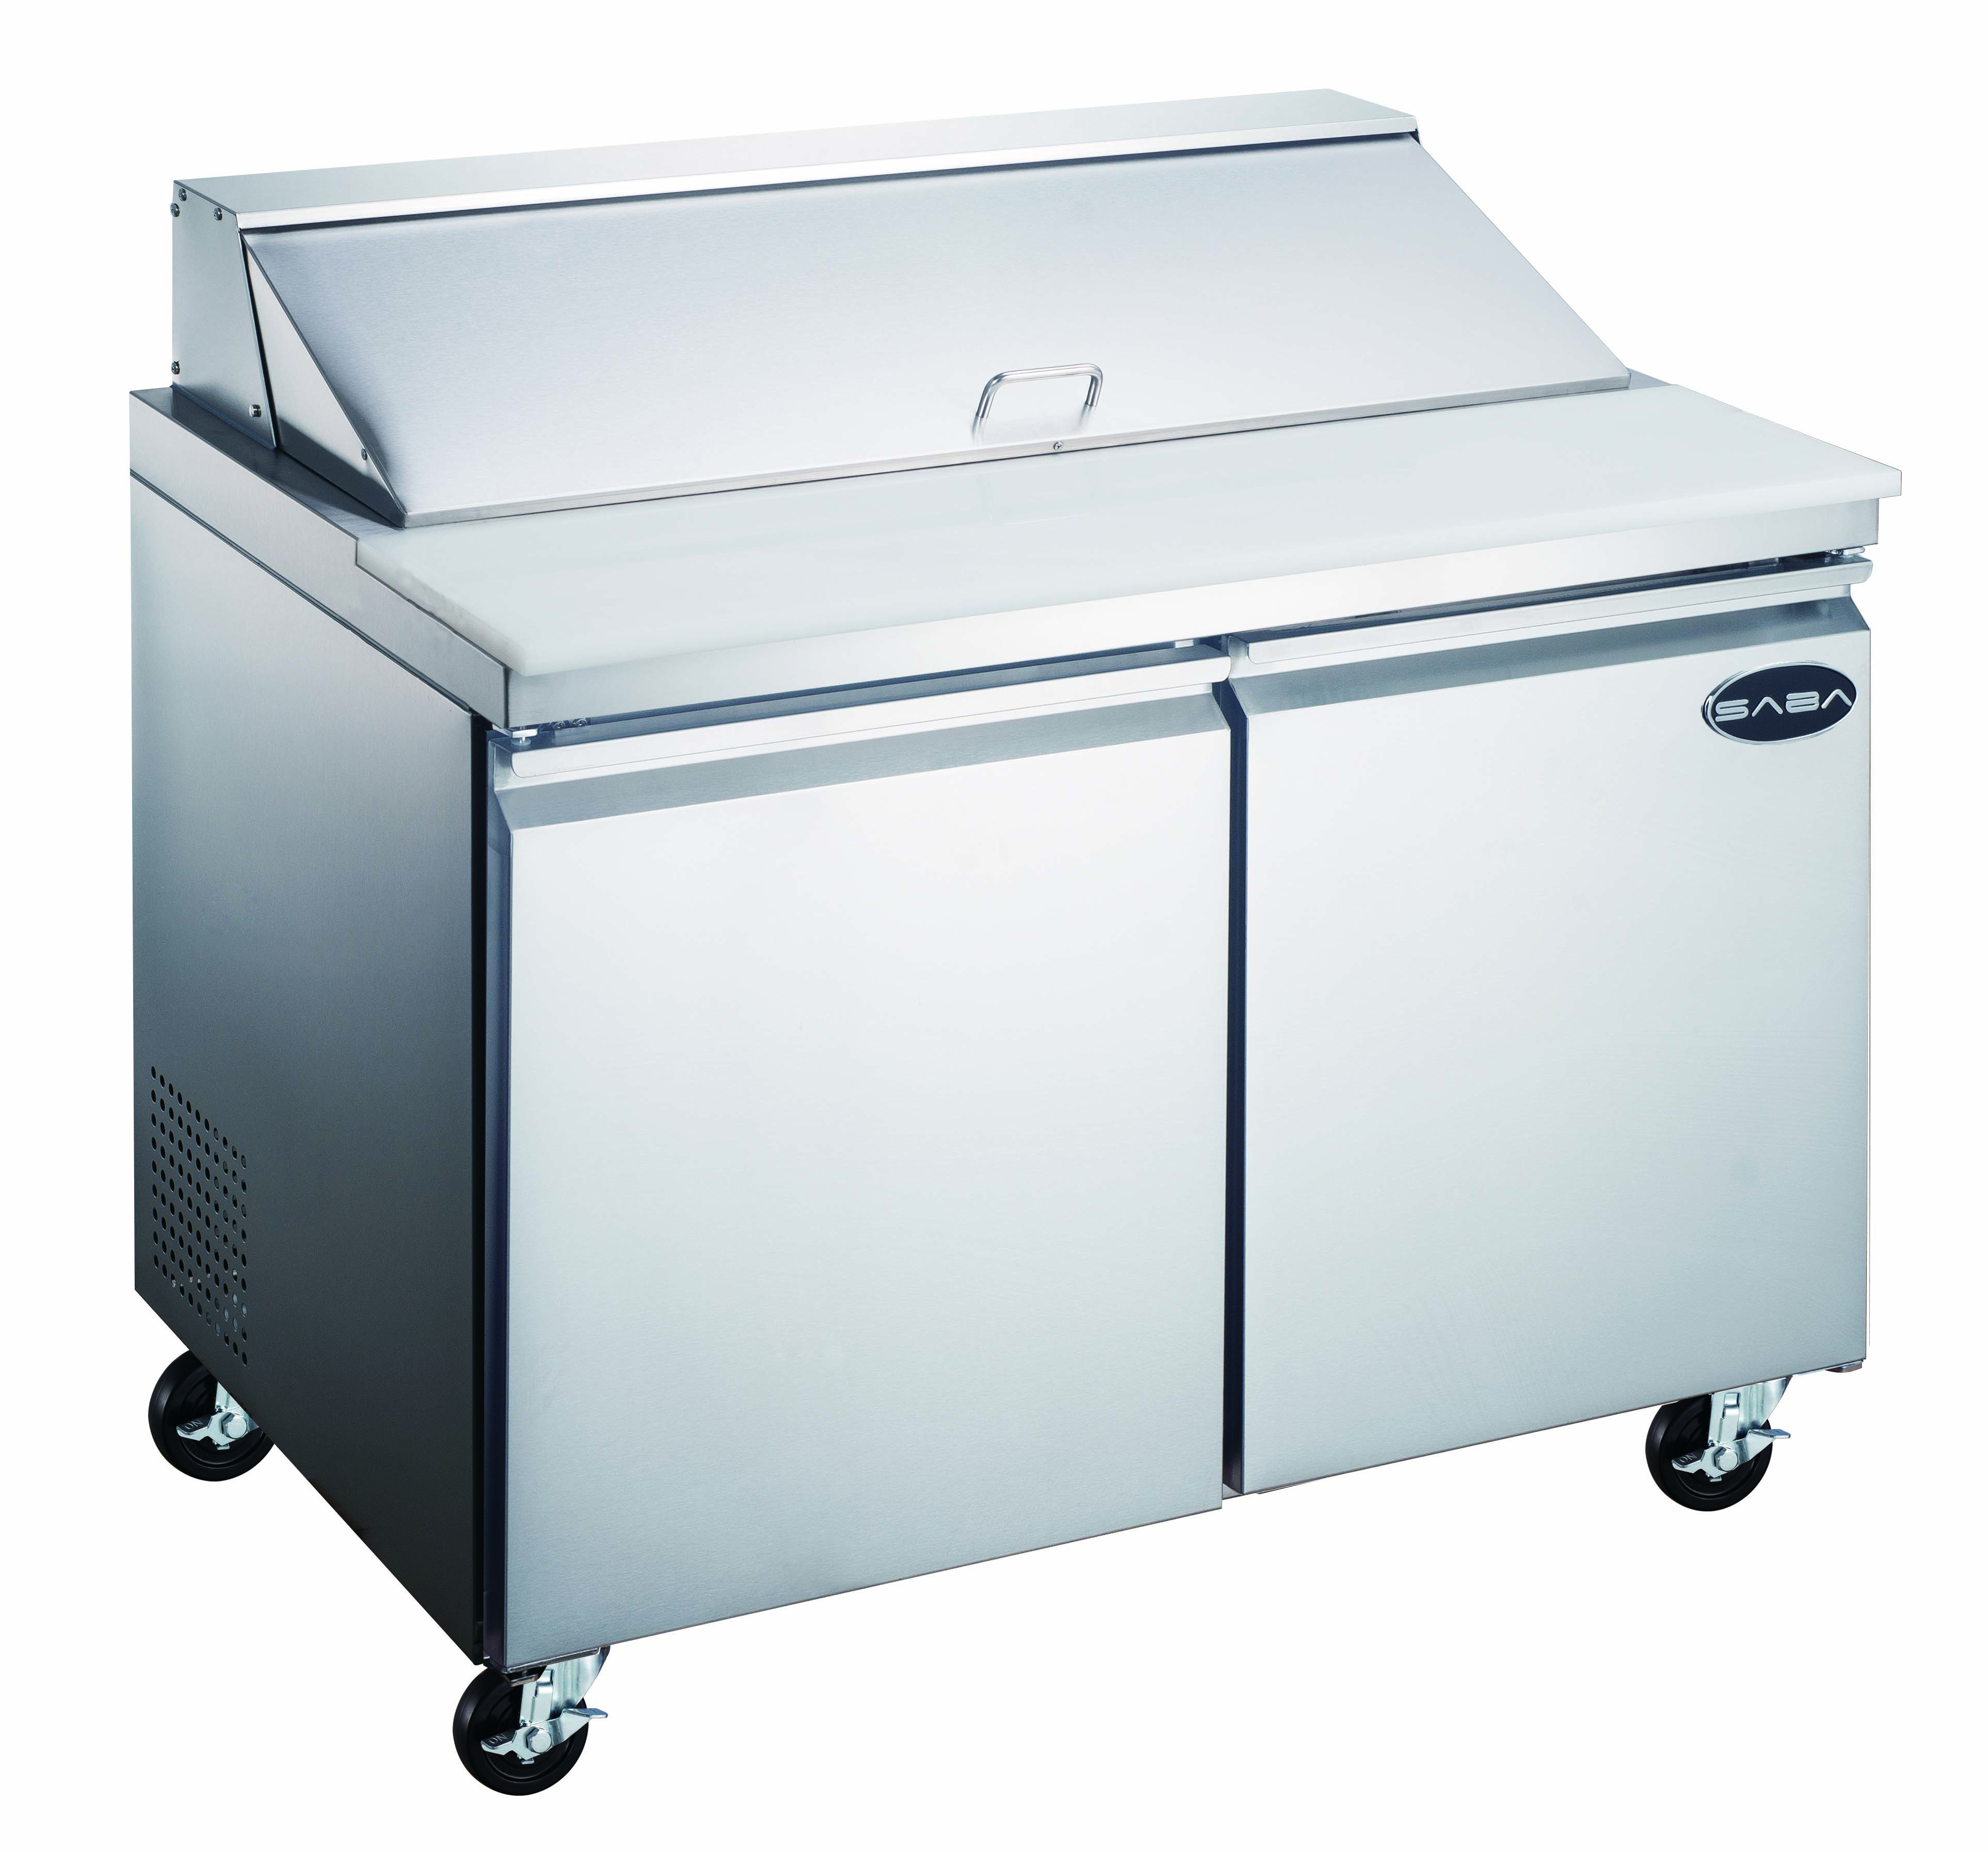 "Heavy Duty Commercial 60"" (2 Door) Sandwich/Salad Prep Table Refrigerator"